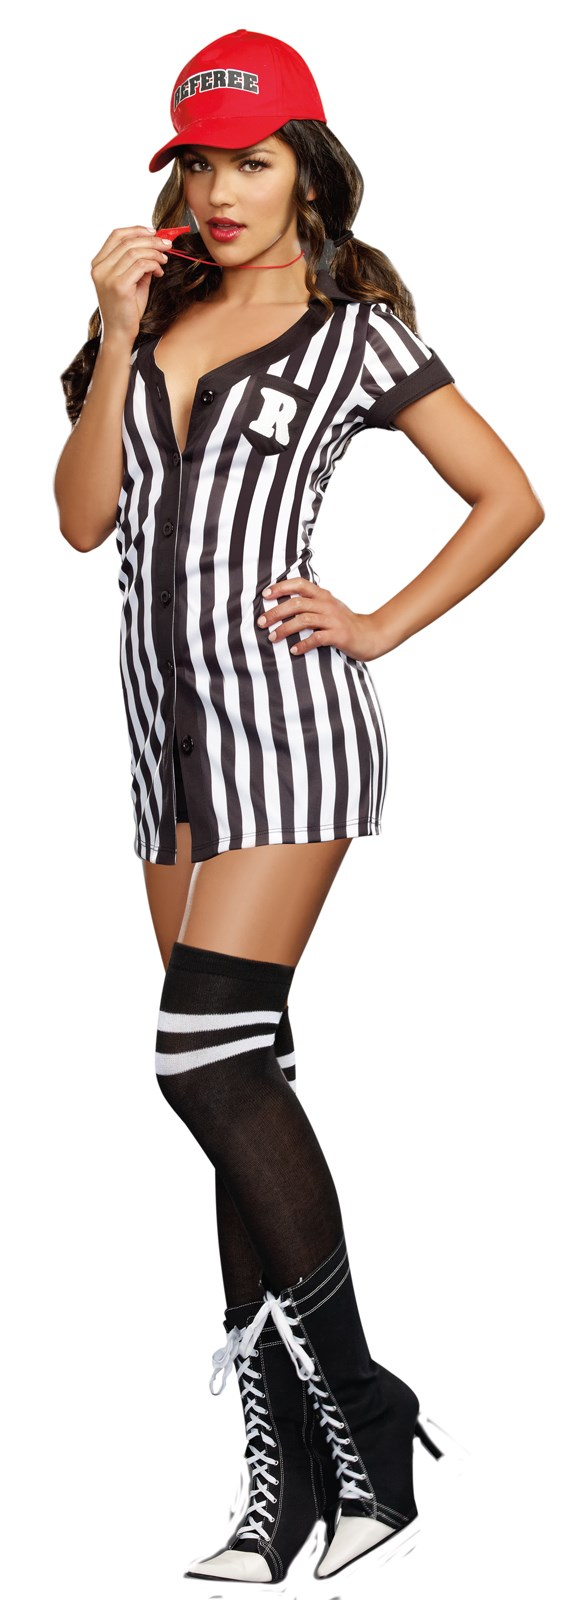 My Game, My Rules Referee Outfit